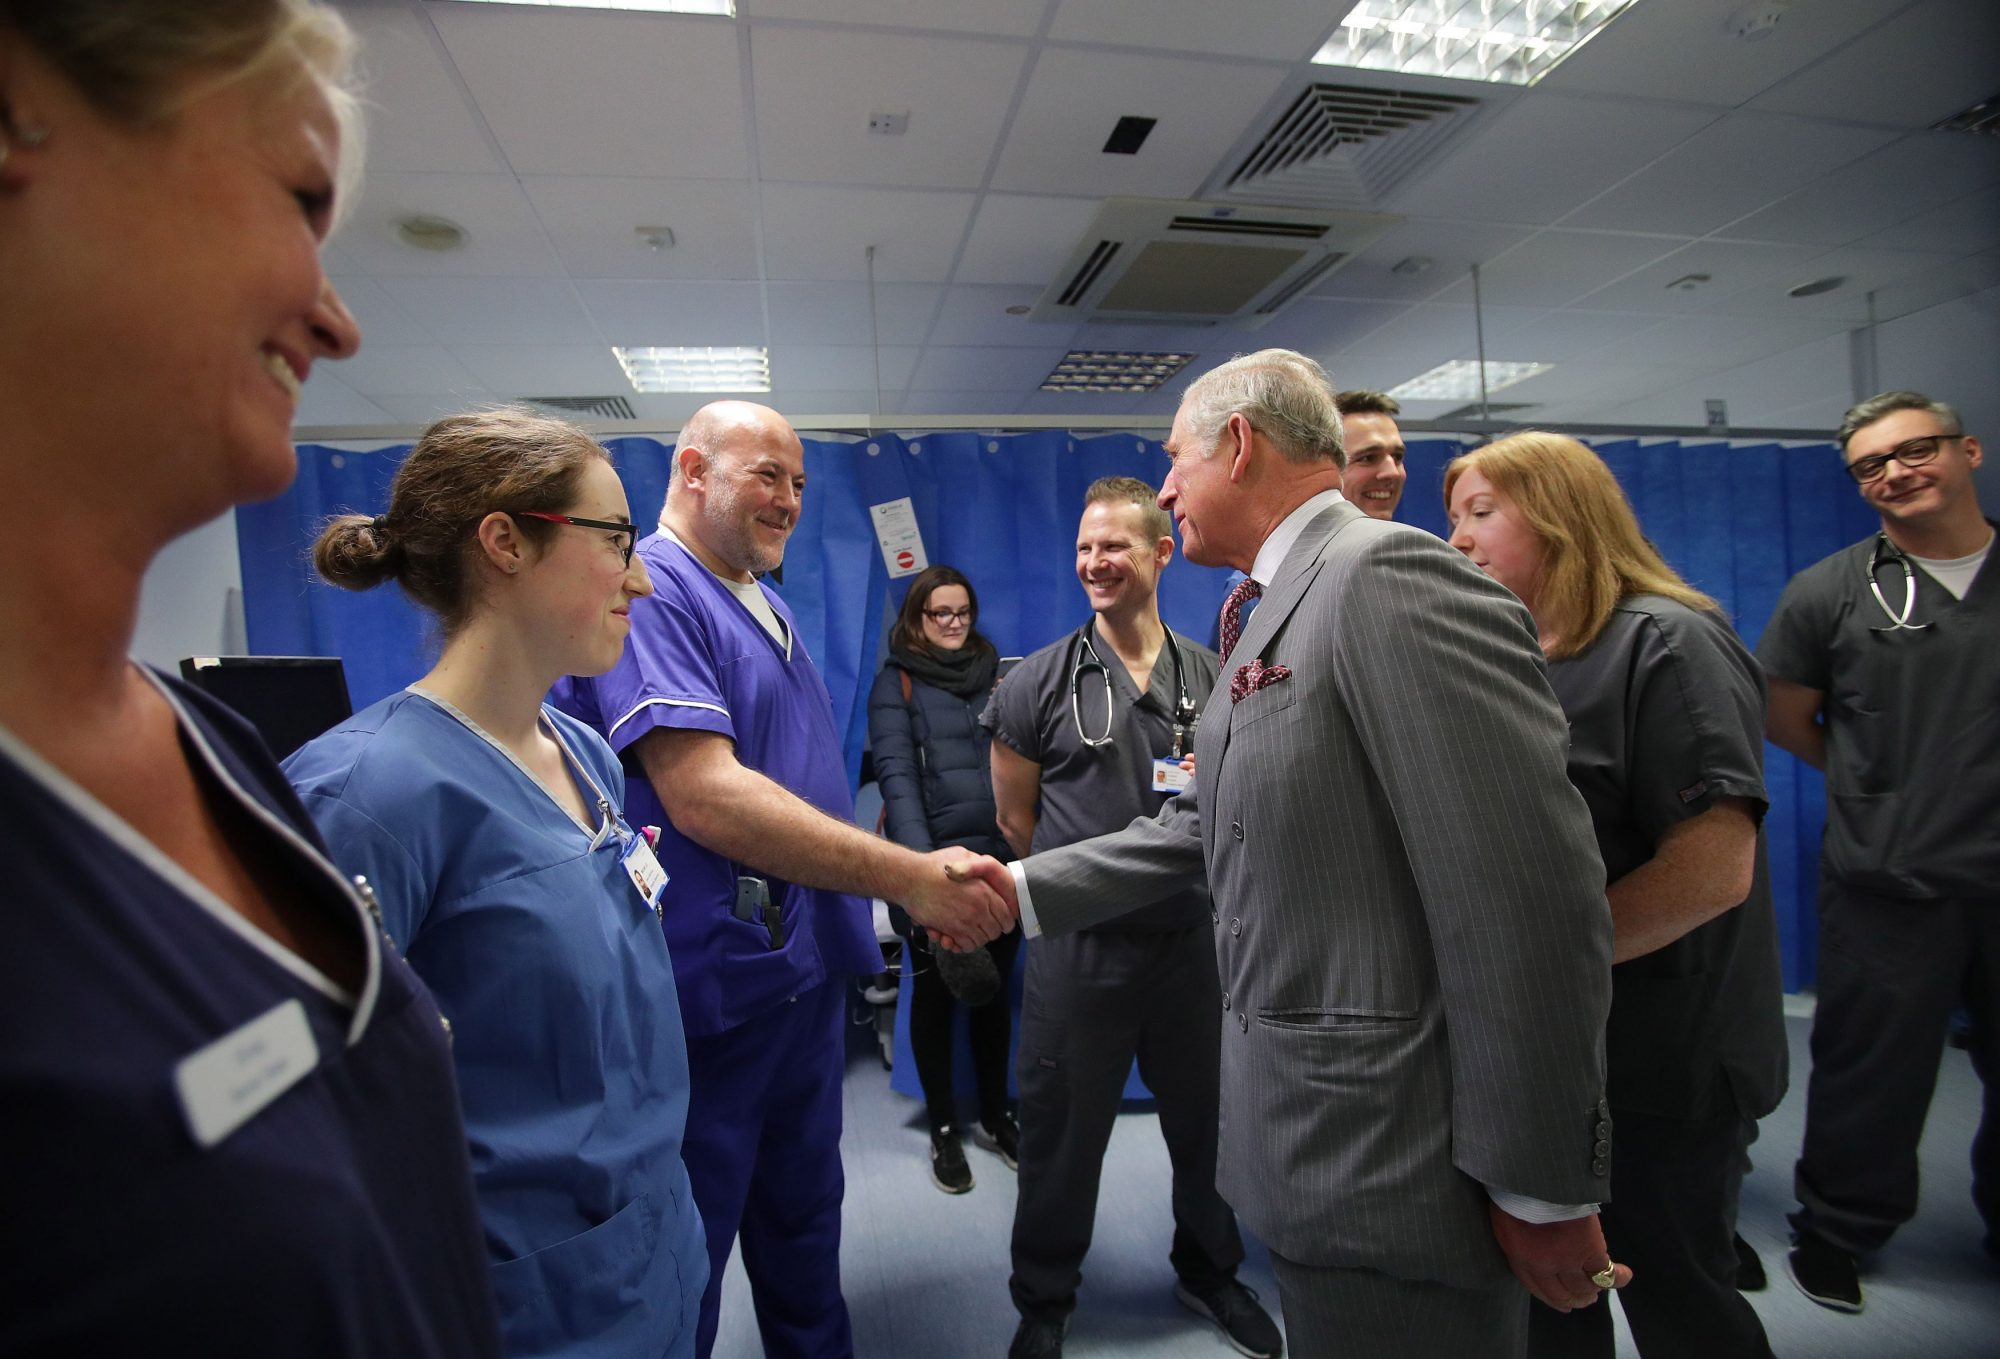 Prince Charles Visits Staff Who Treated The Westminster Terror Attack Injured